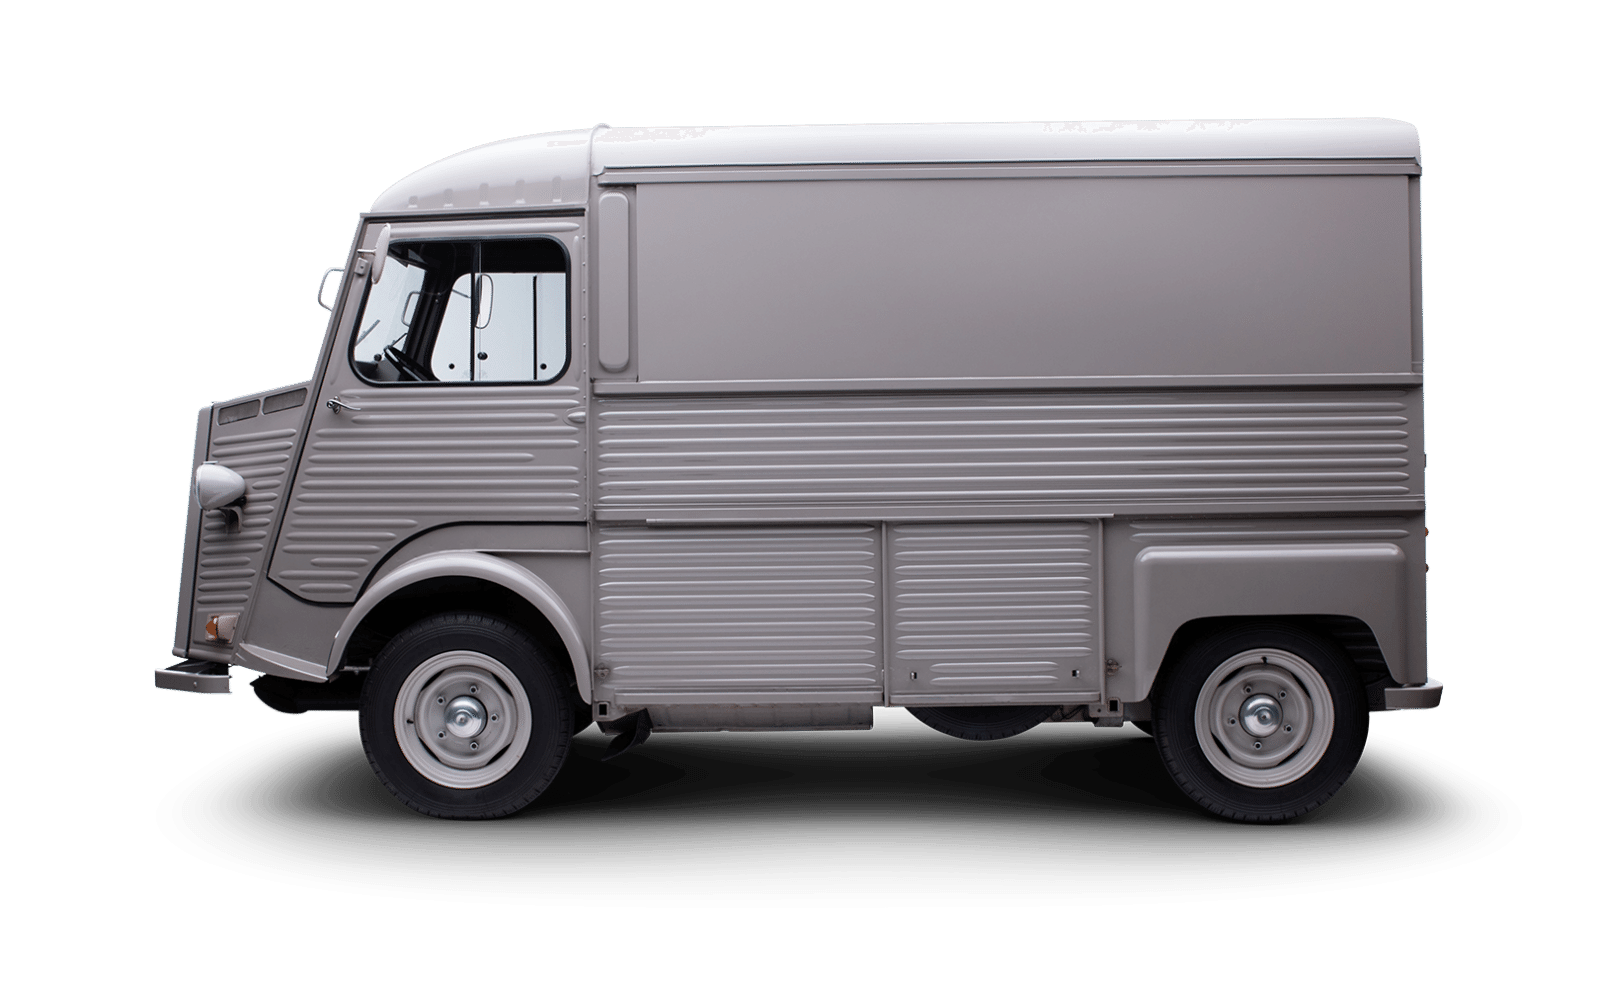 Delivery car clipart vector black and white delivery van PNG Clipart - Download free Car images in PNG vector black and white